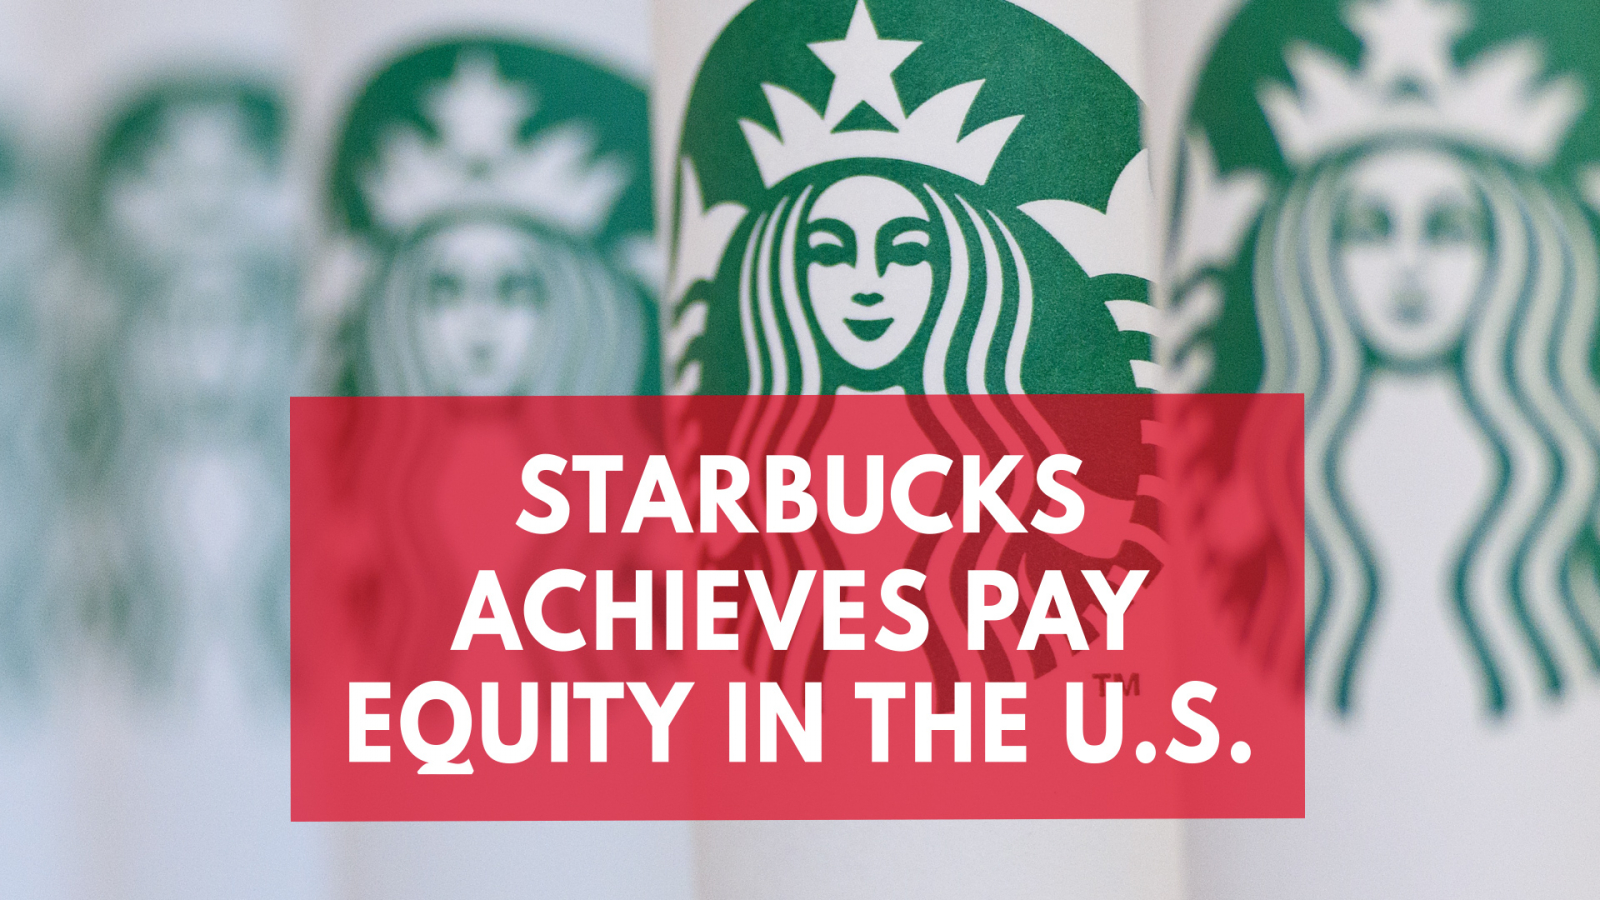 starbucks-has-achieved-pay-equity-in-the-u-s